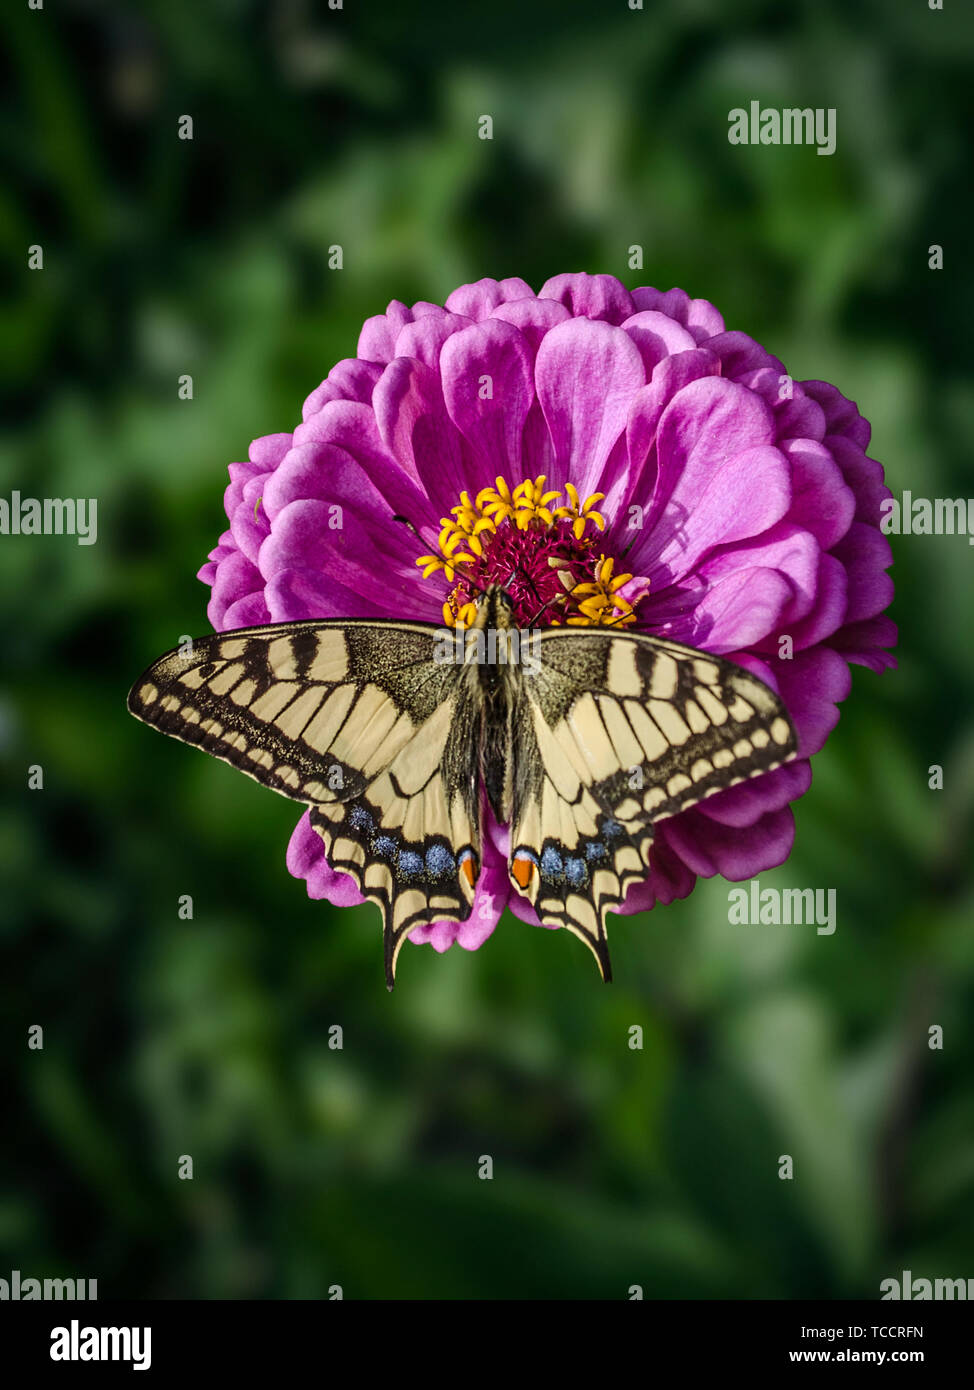 A large machaon butterfly sits on an magenta Zinnia flower. Papilio machaon, the Old World swallowtail, is a butterfly of the family Papilionidae. The - Stock Image